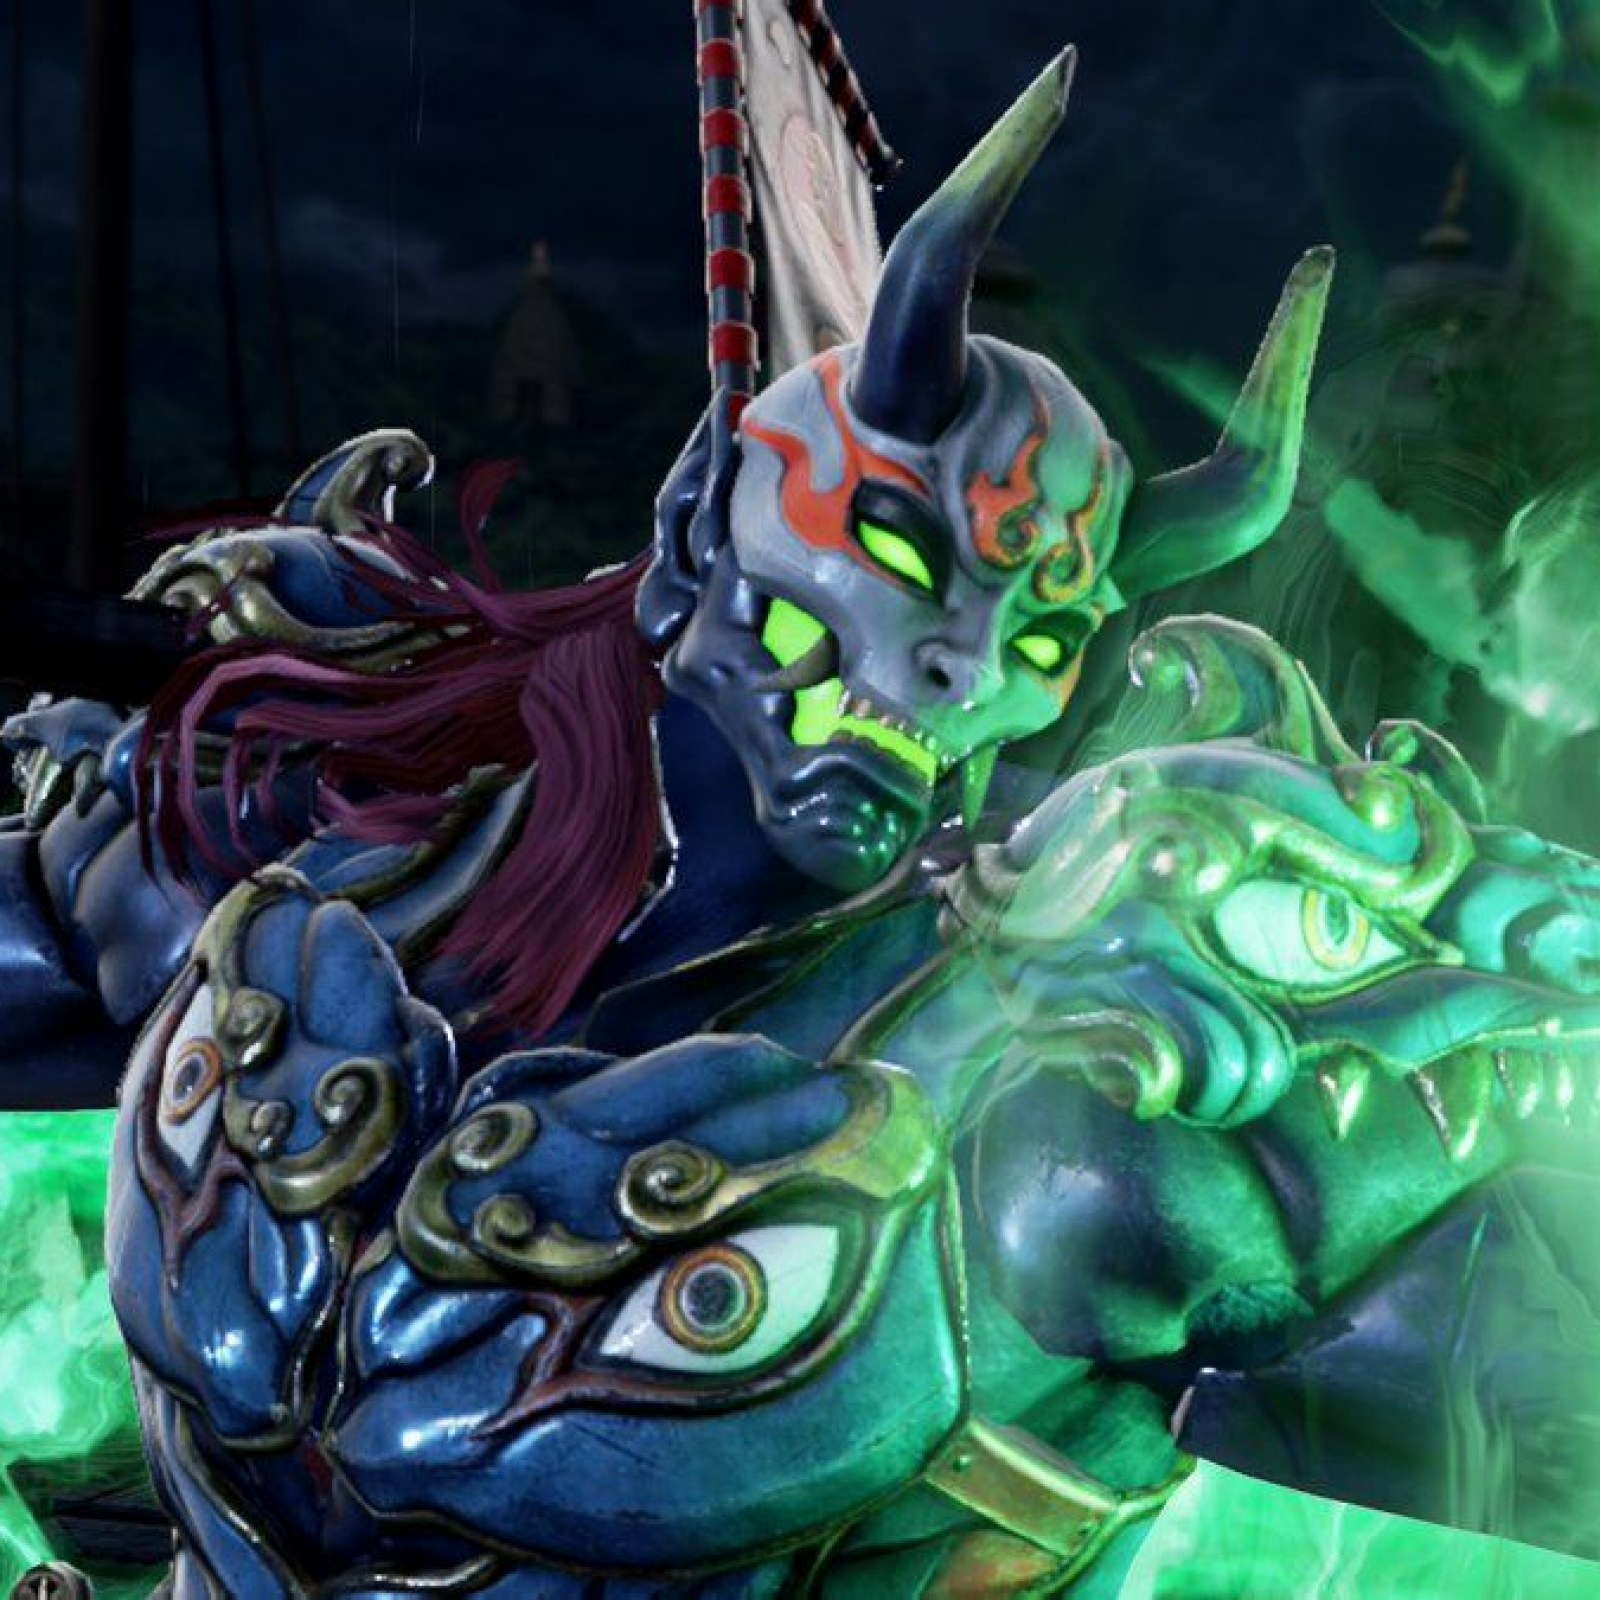 Soulcalibur Vi Yoshimitsu Trailer Brings Another Returning Character To Roster